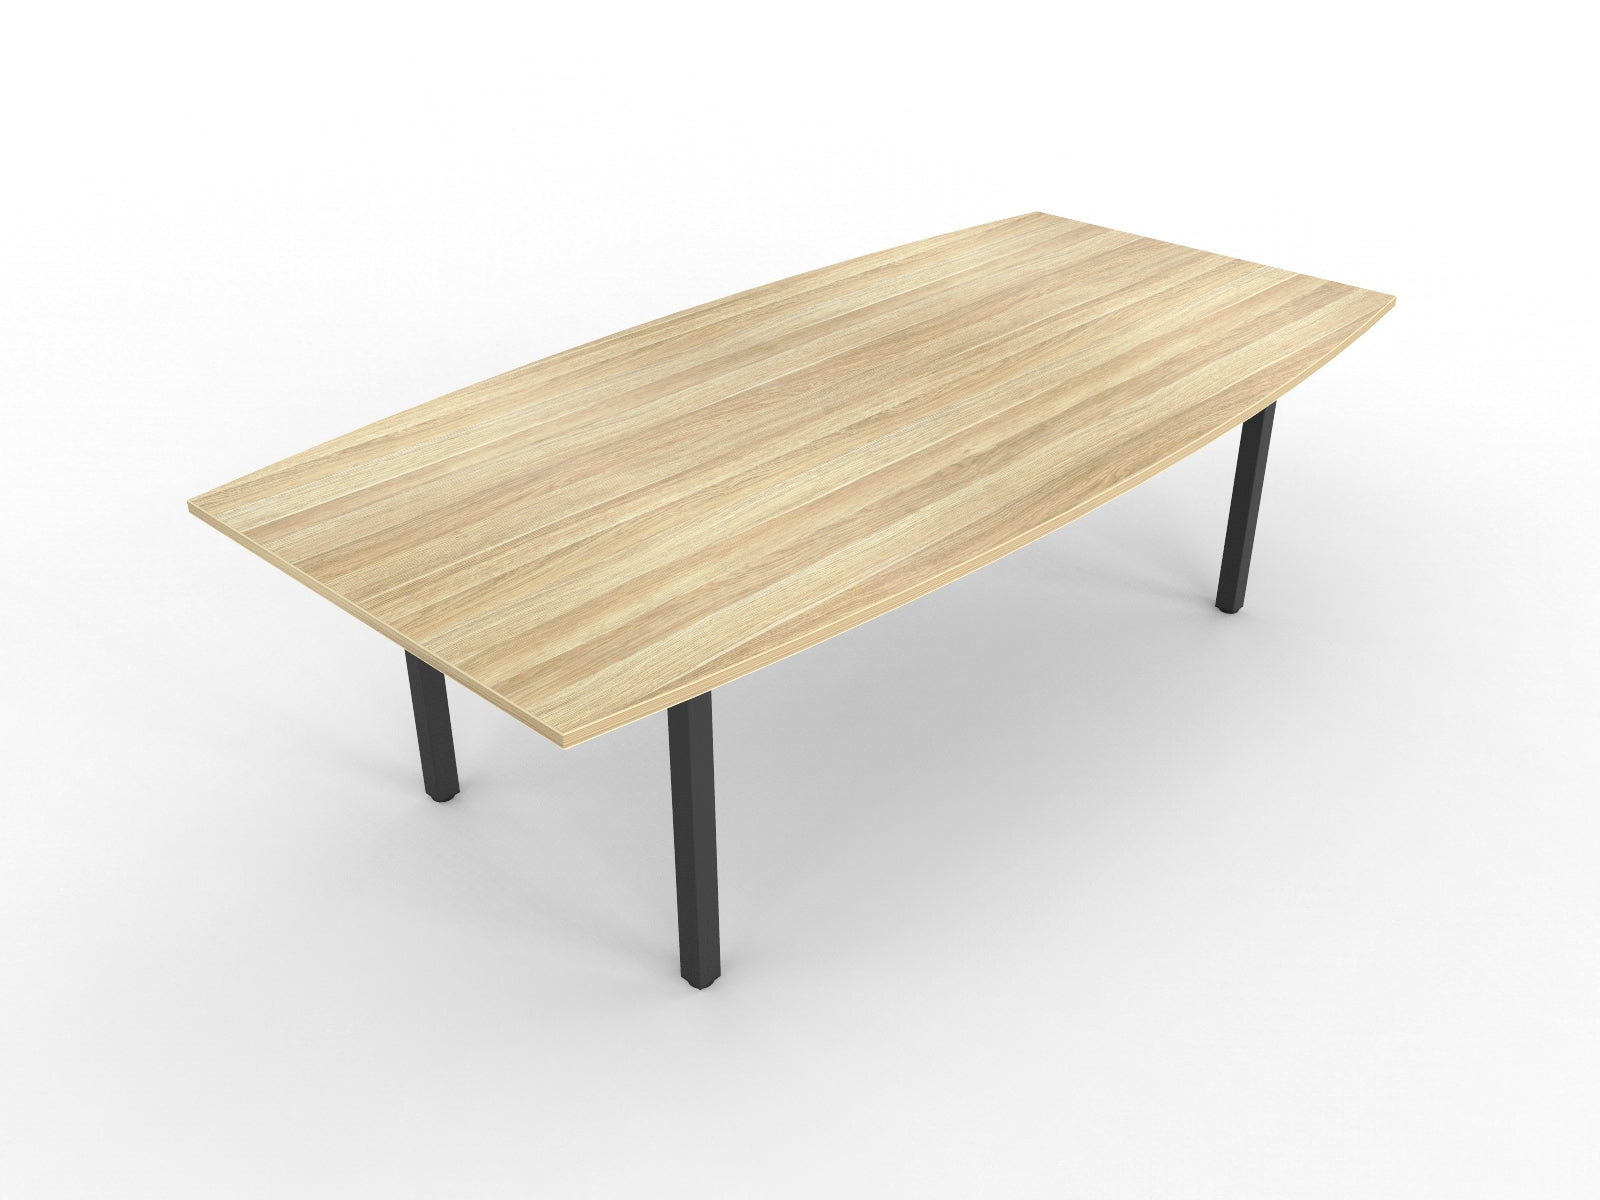 Cubit 2400 x 1200 Boat Shaped Boardroom Table